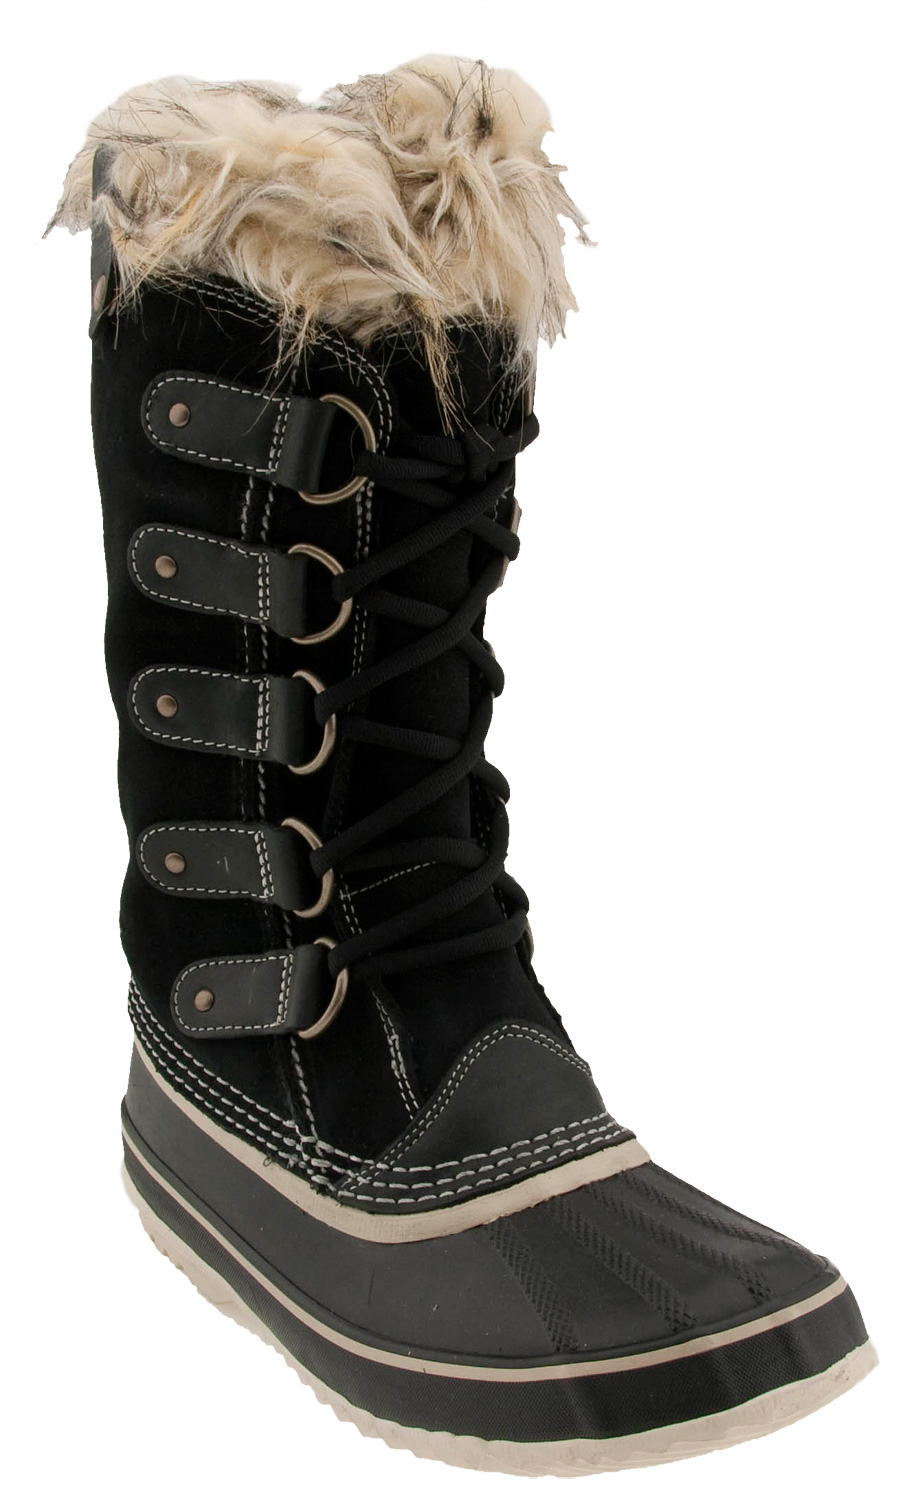 Stylish Snow Boots 99yqYB9m